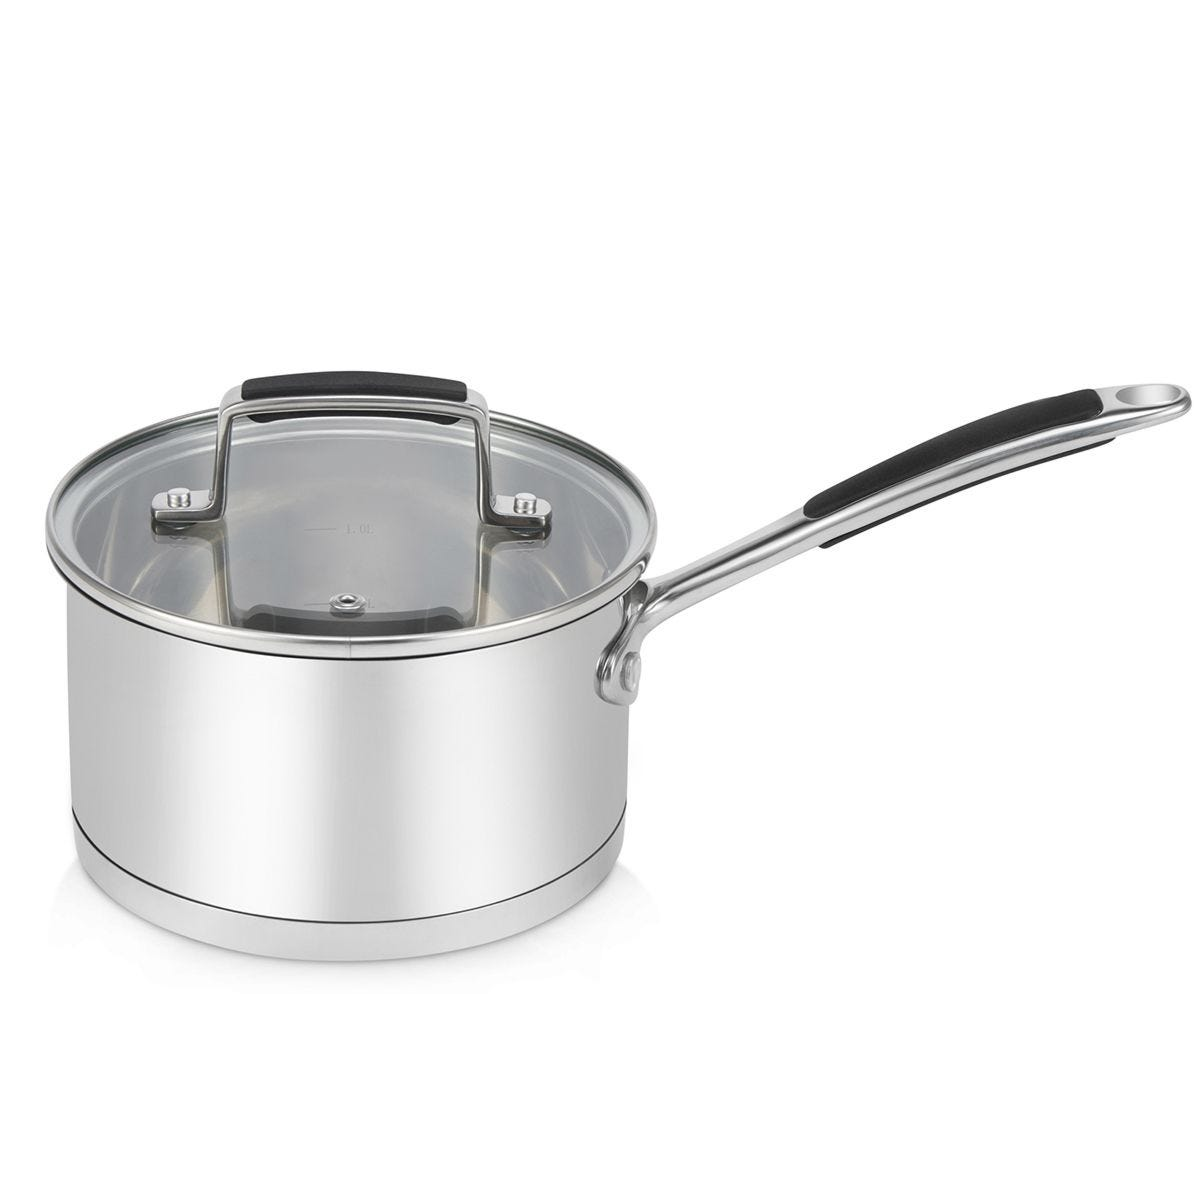 Robert Dyas Stainless Steel Saucepan with Lid - 18cm